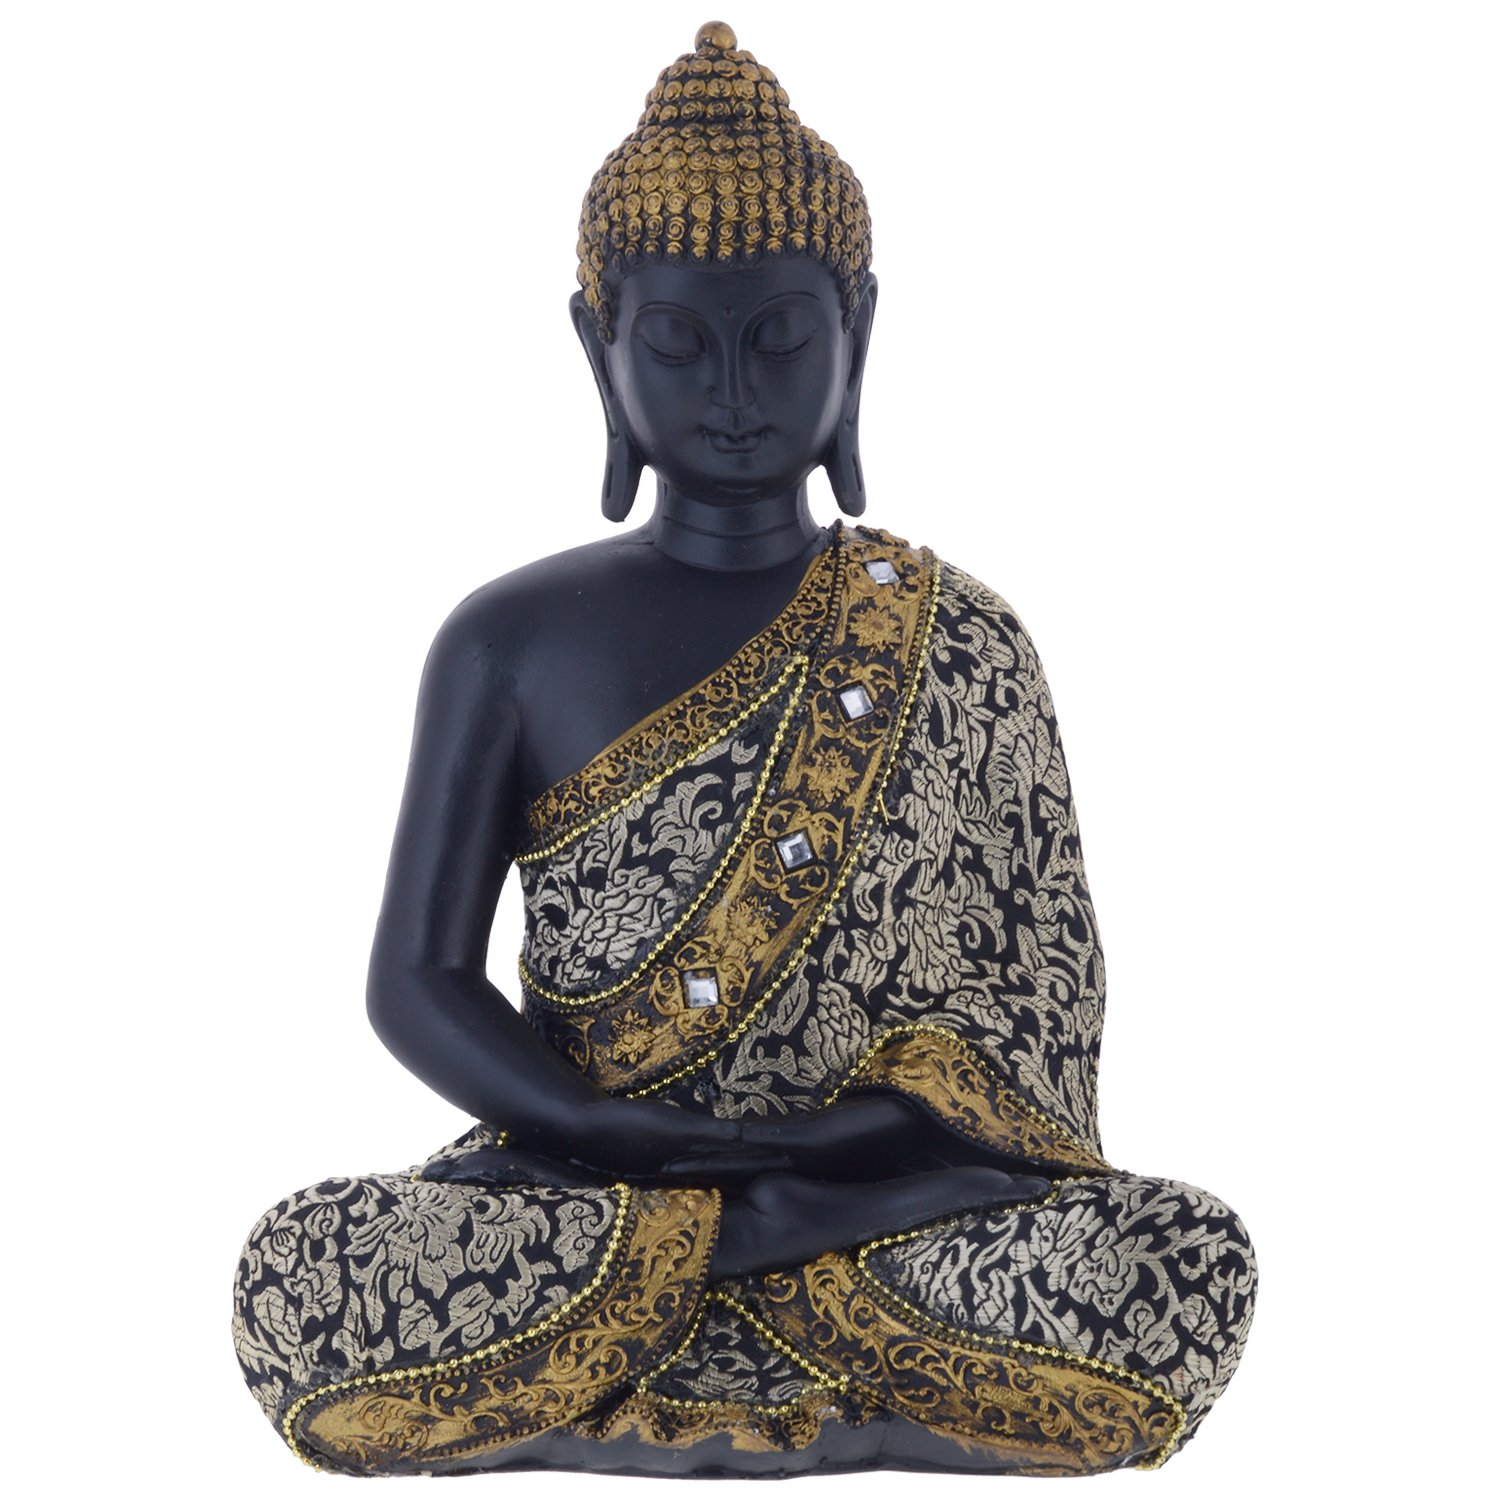 statue idol solid decor statues home for buddha dsc brass especially gift product